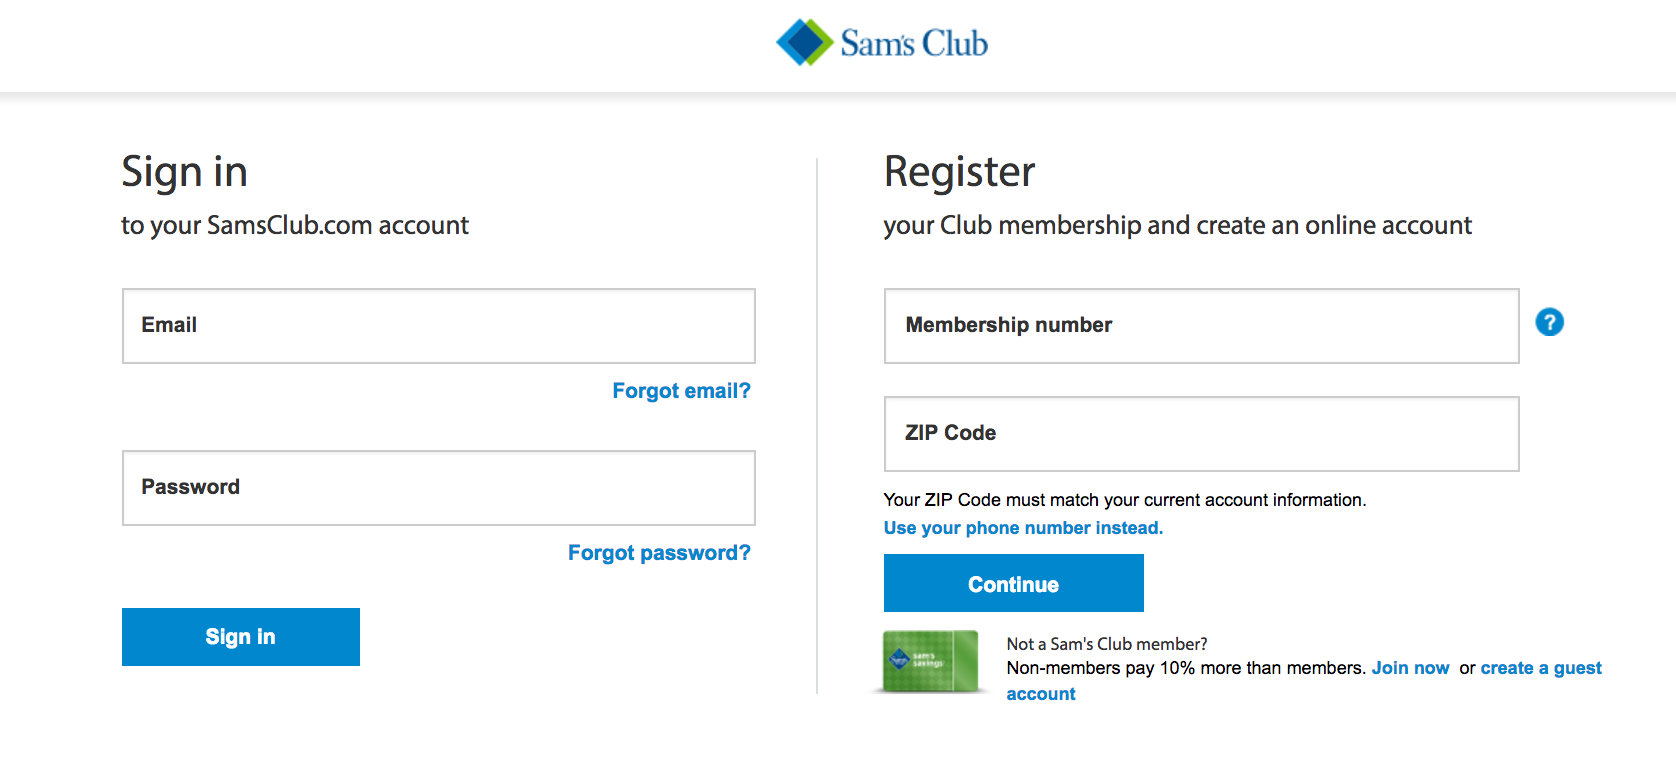 This is where you sign in before using your Sam's Club coupon code